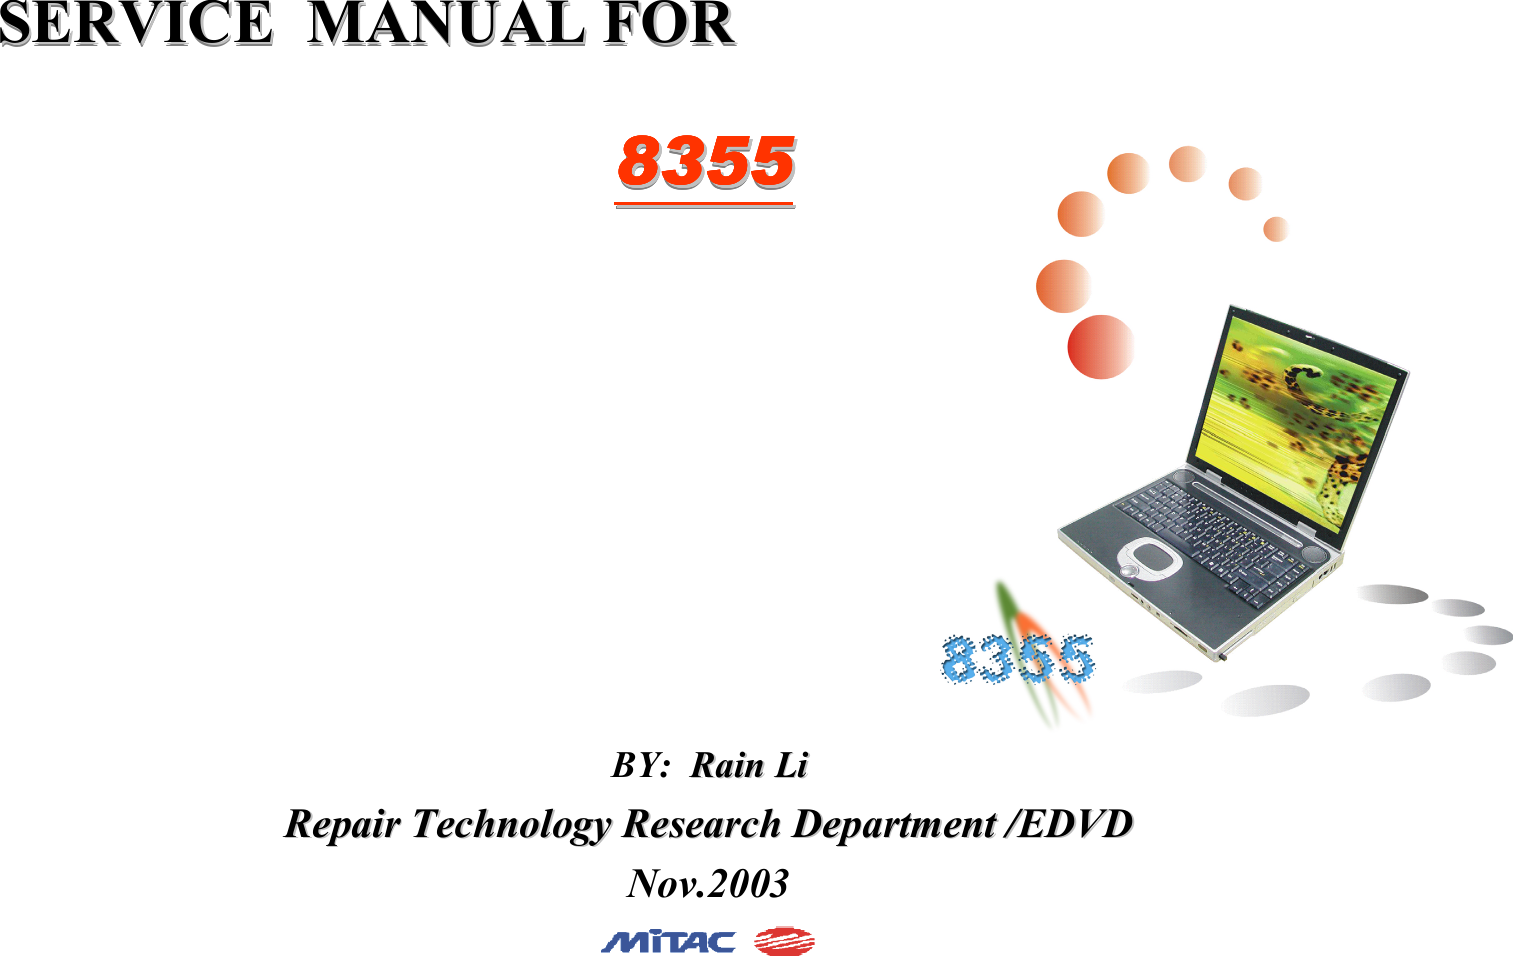 Mitac 8355 Users Manual Microsoft Vga 256mb 128bit D2 D3